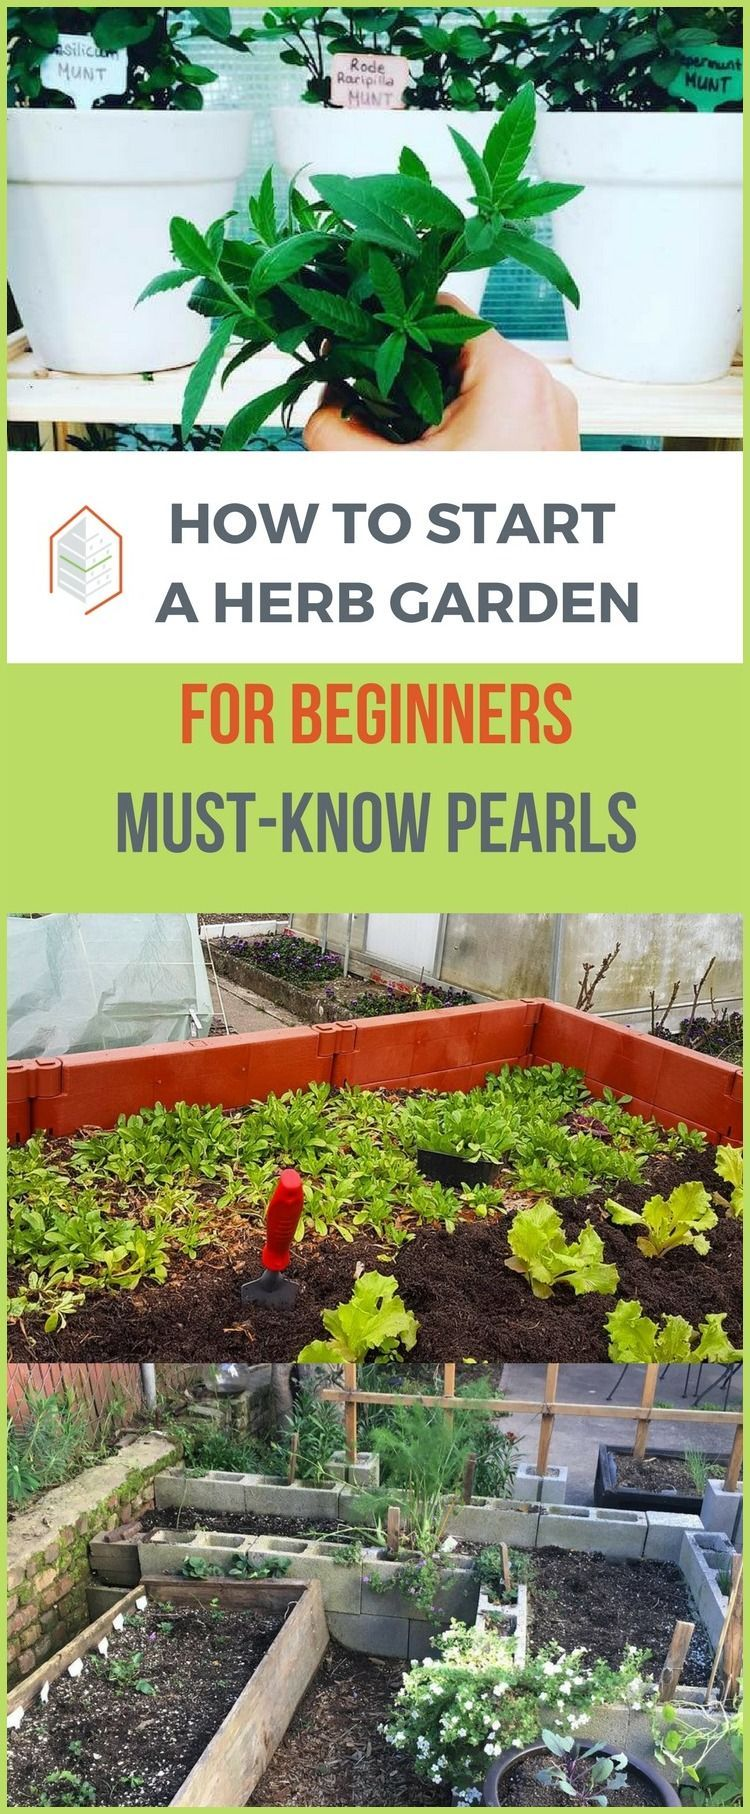 How To Start An Herb Garden For Beginners Posted By 400 x 300